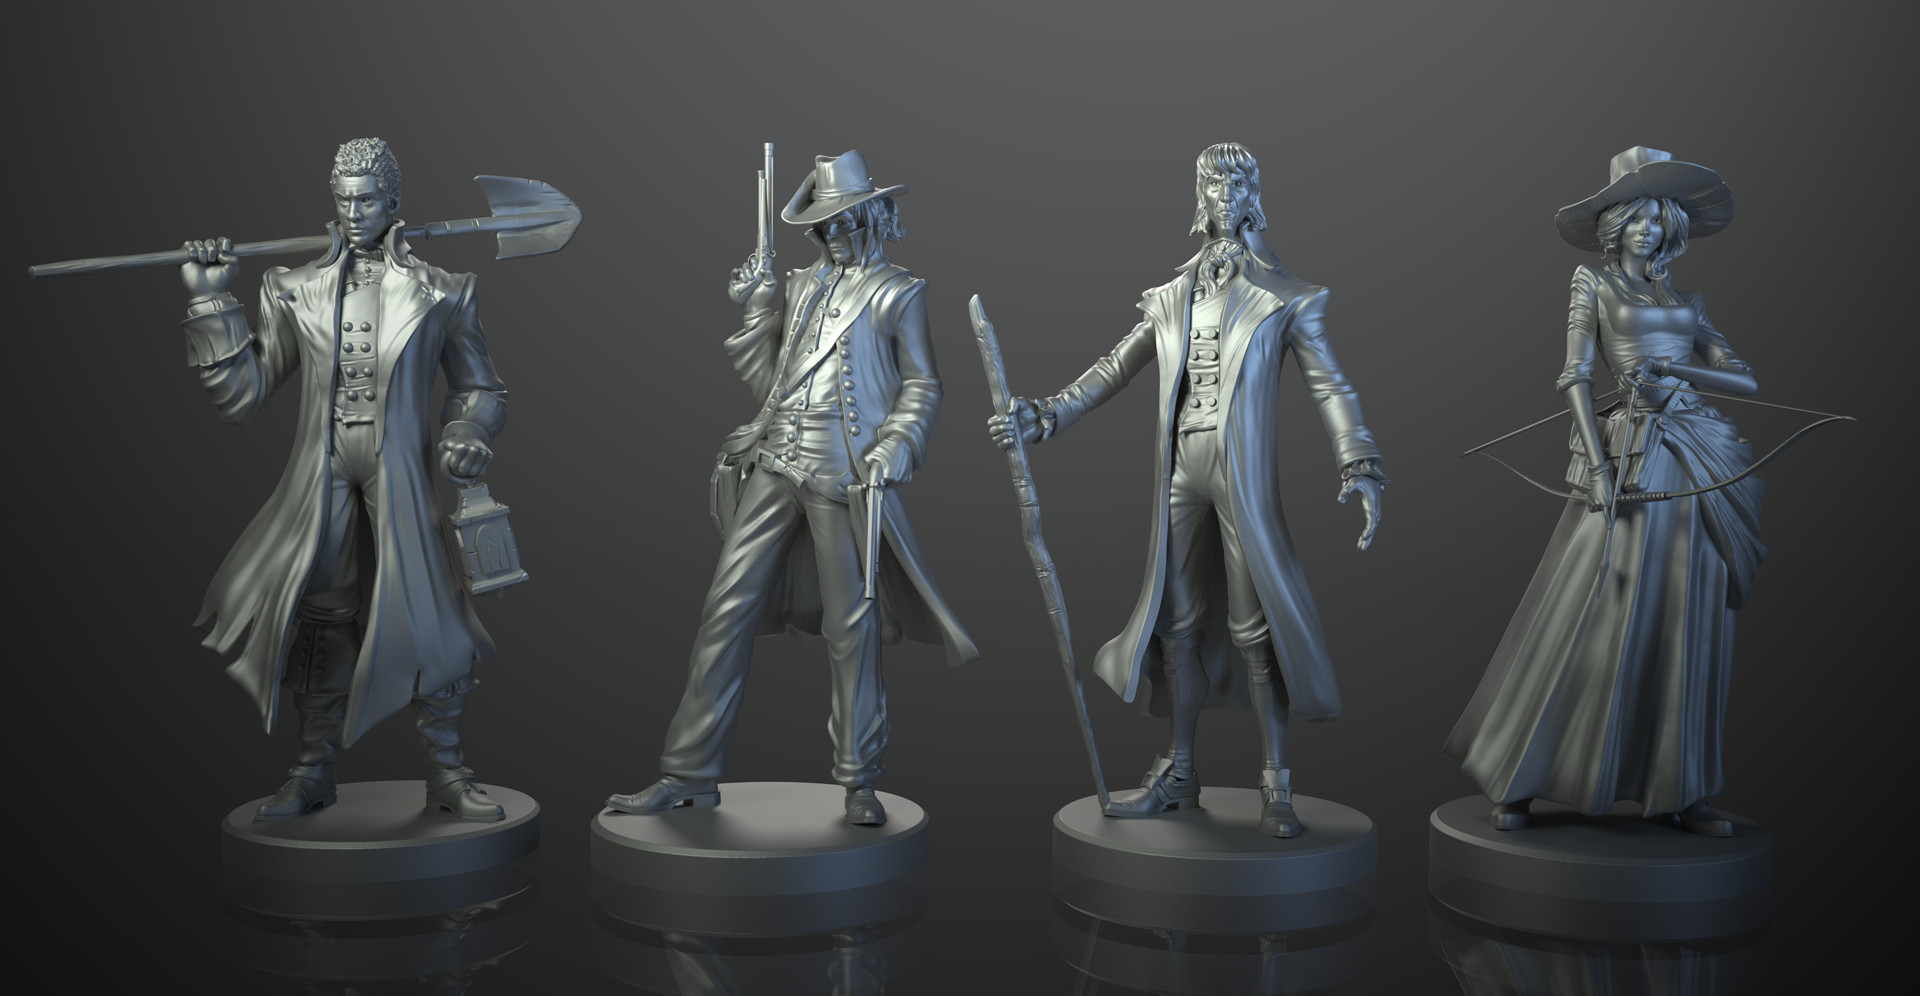 ArtStation - Legends of Sleepy Hollow boardgame - Cycles